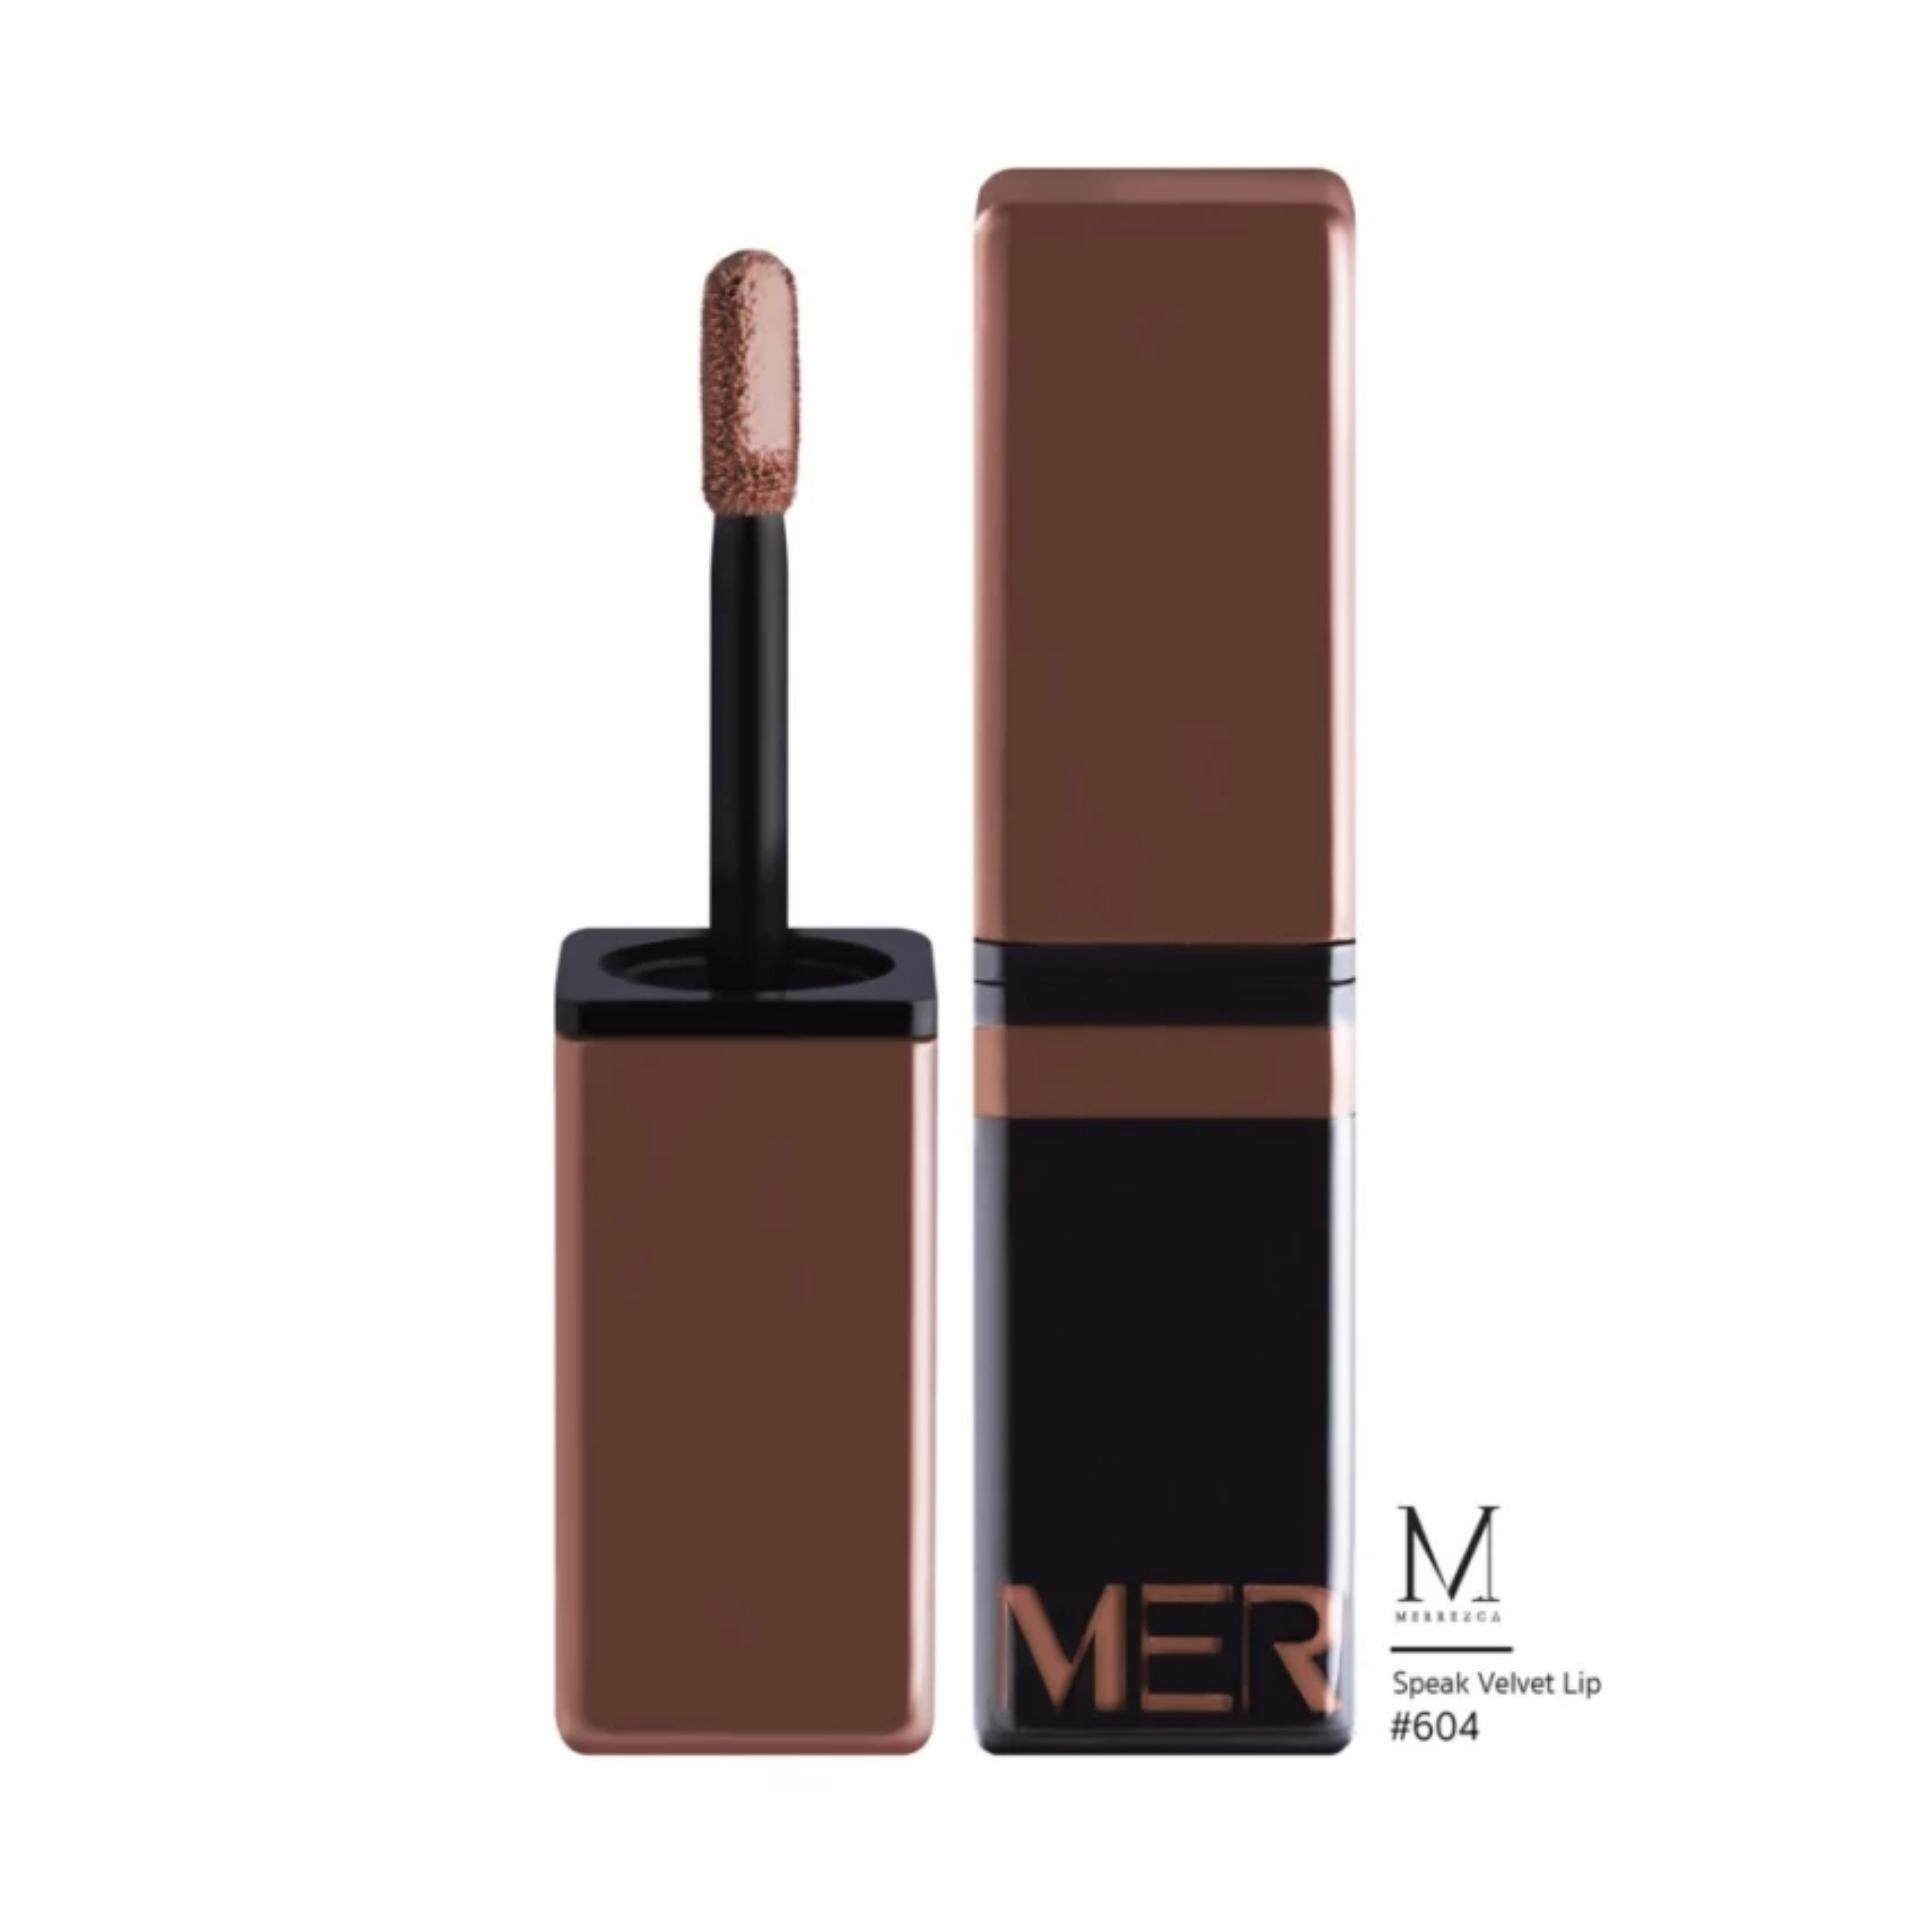 Merrez'ca Speak Velvet Lip #604 Sandy Brown